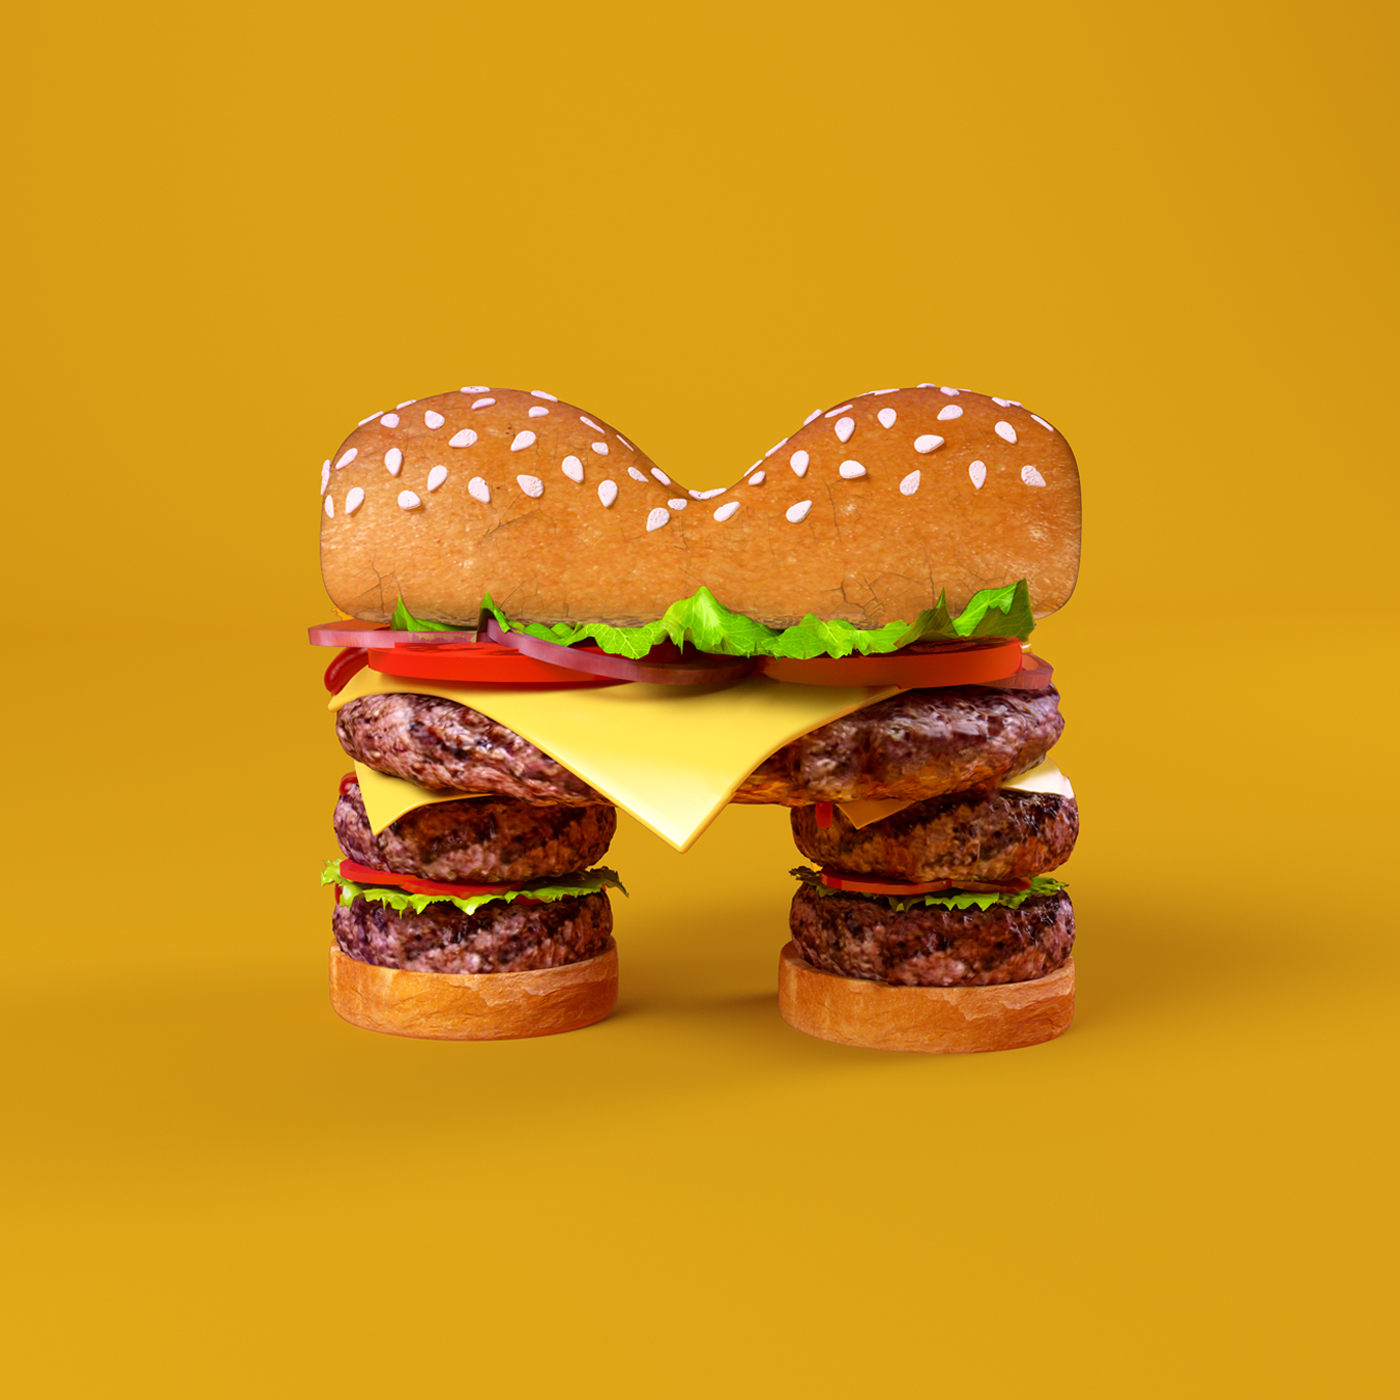 FOOD 3DFOOD FOODALPHABET CESS 3D 3DTYPE LETTERING CGI 3DARTIST BURGER